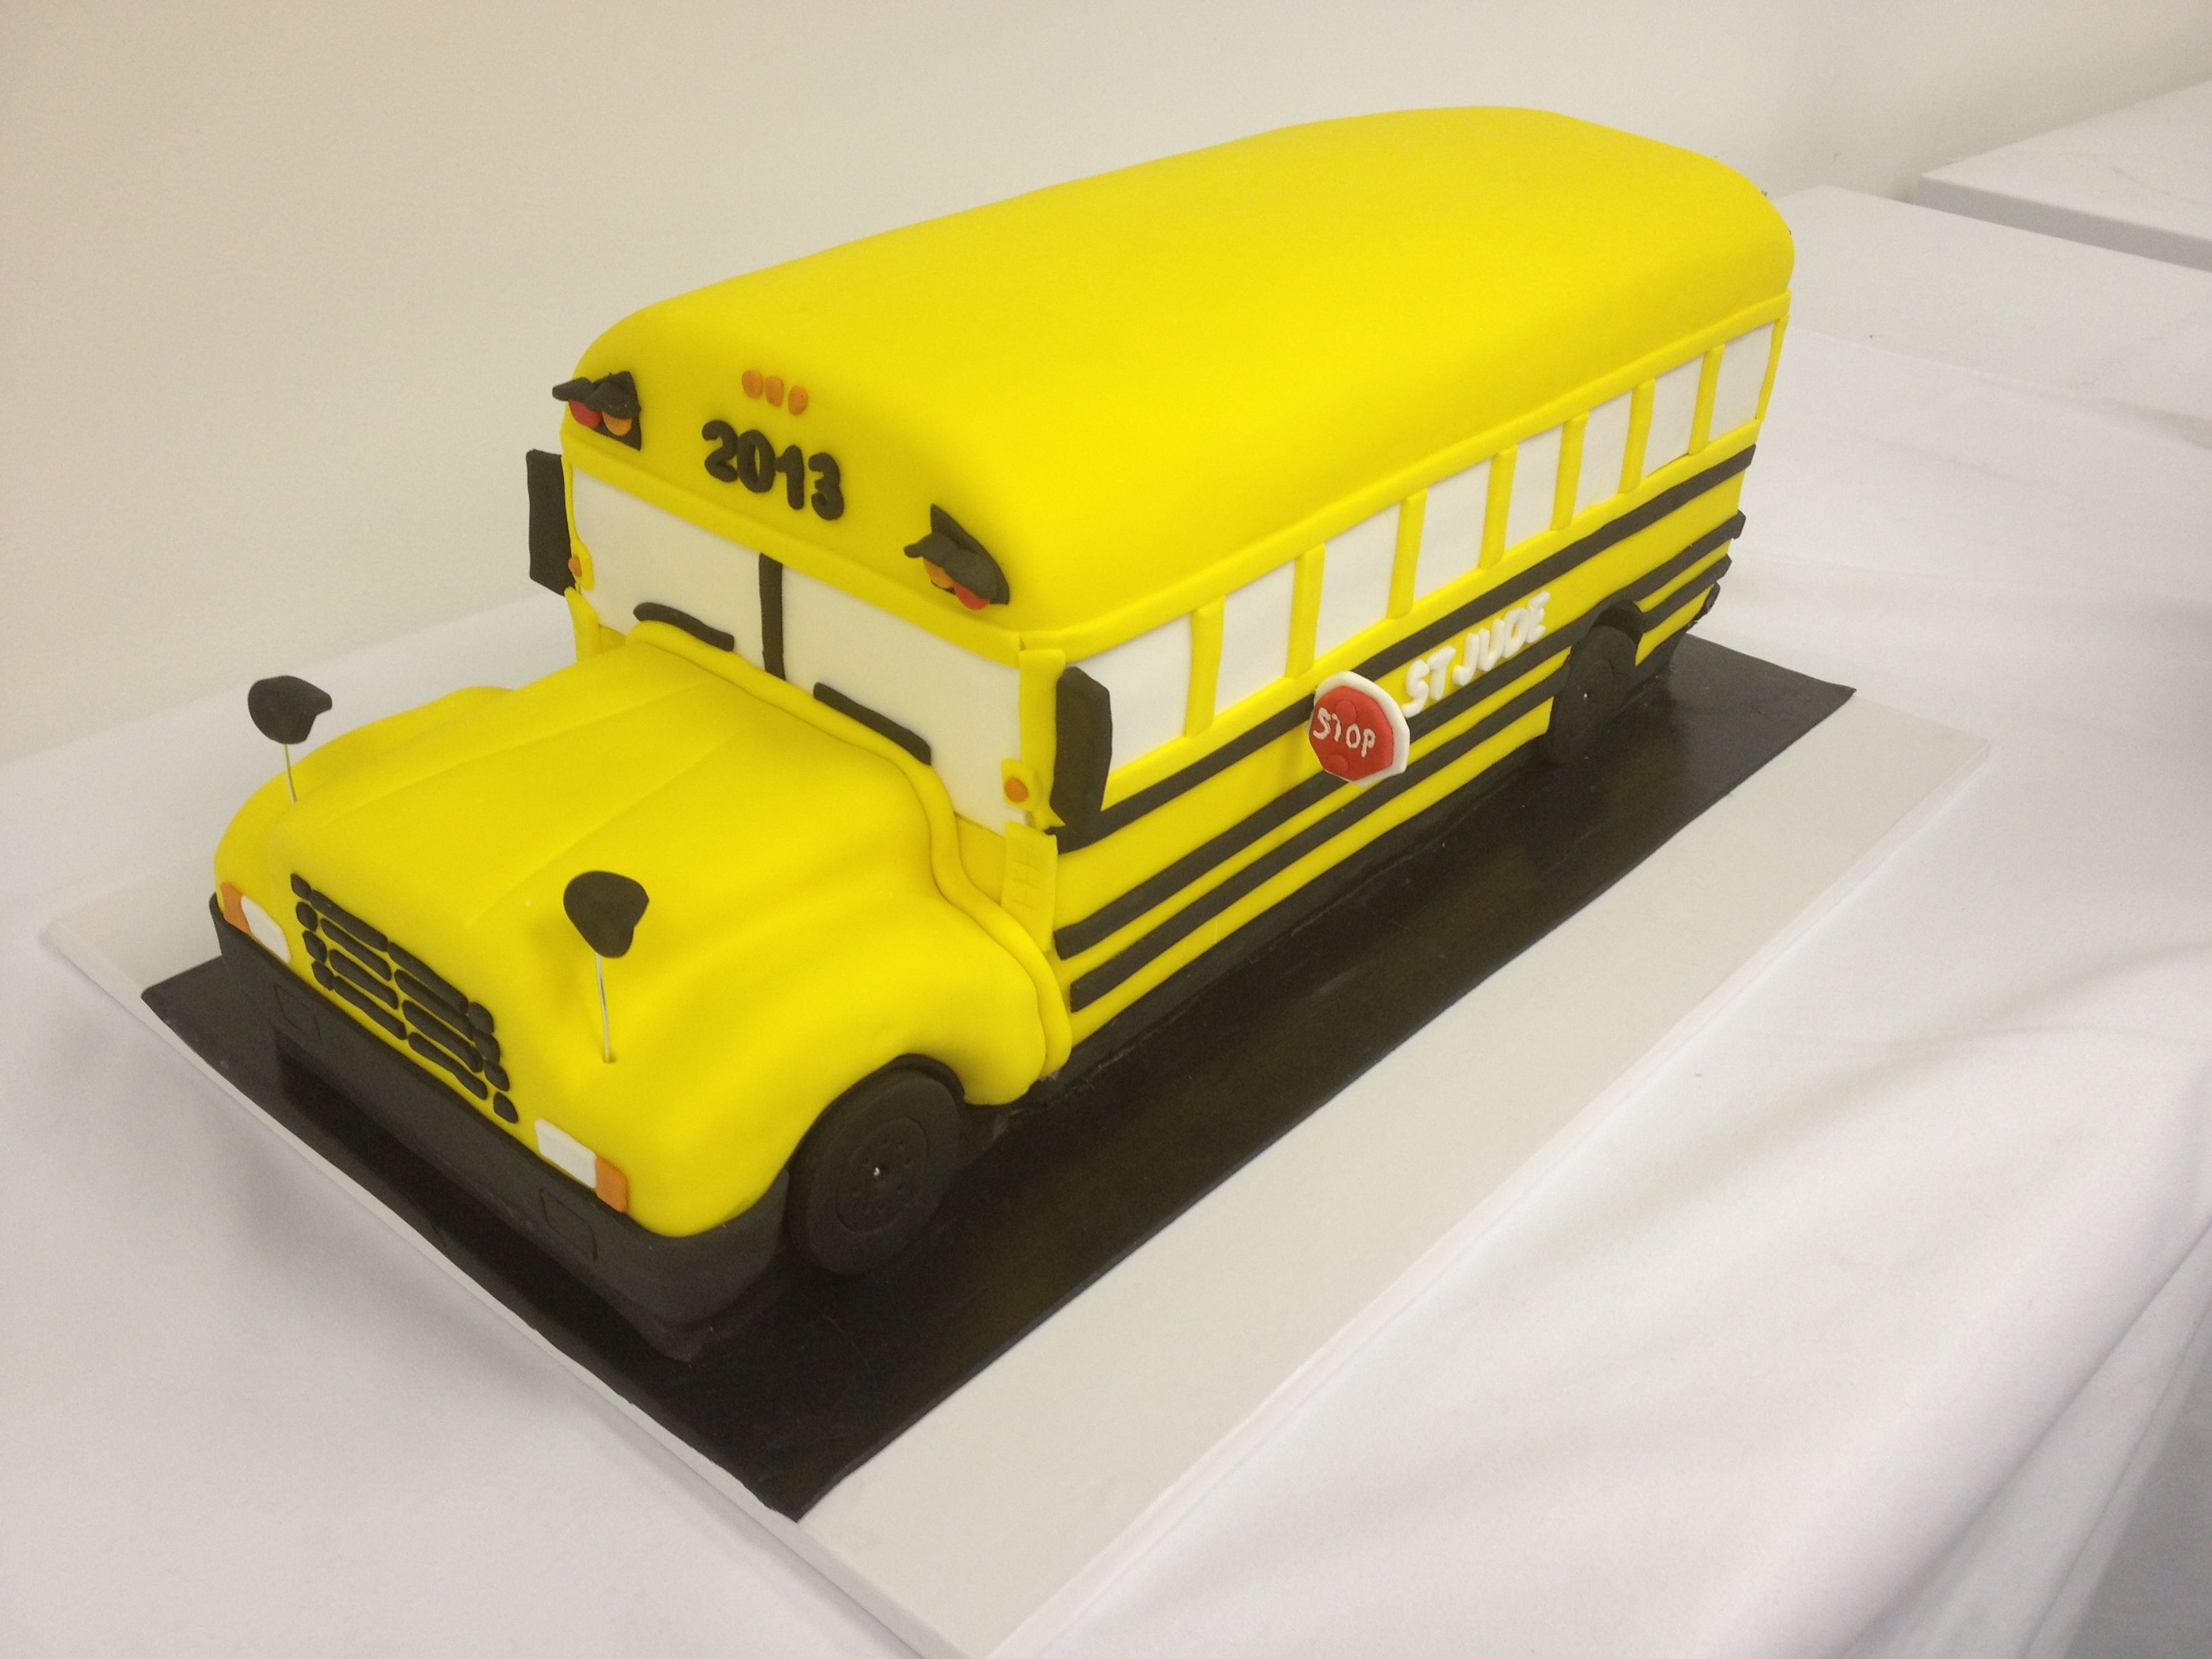 School Bus Cake Design : School Bus Cake for St. Jude just cakes Pinterest